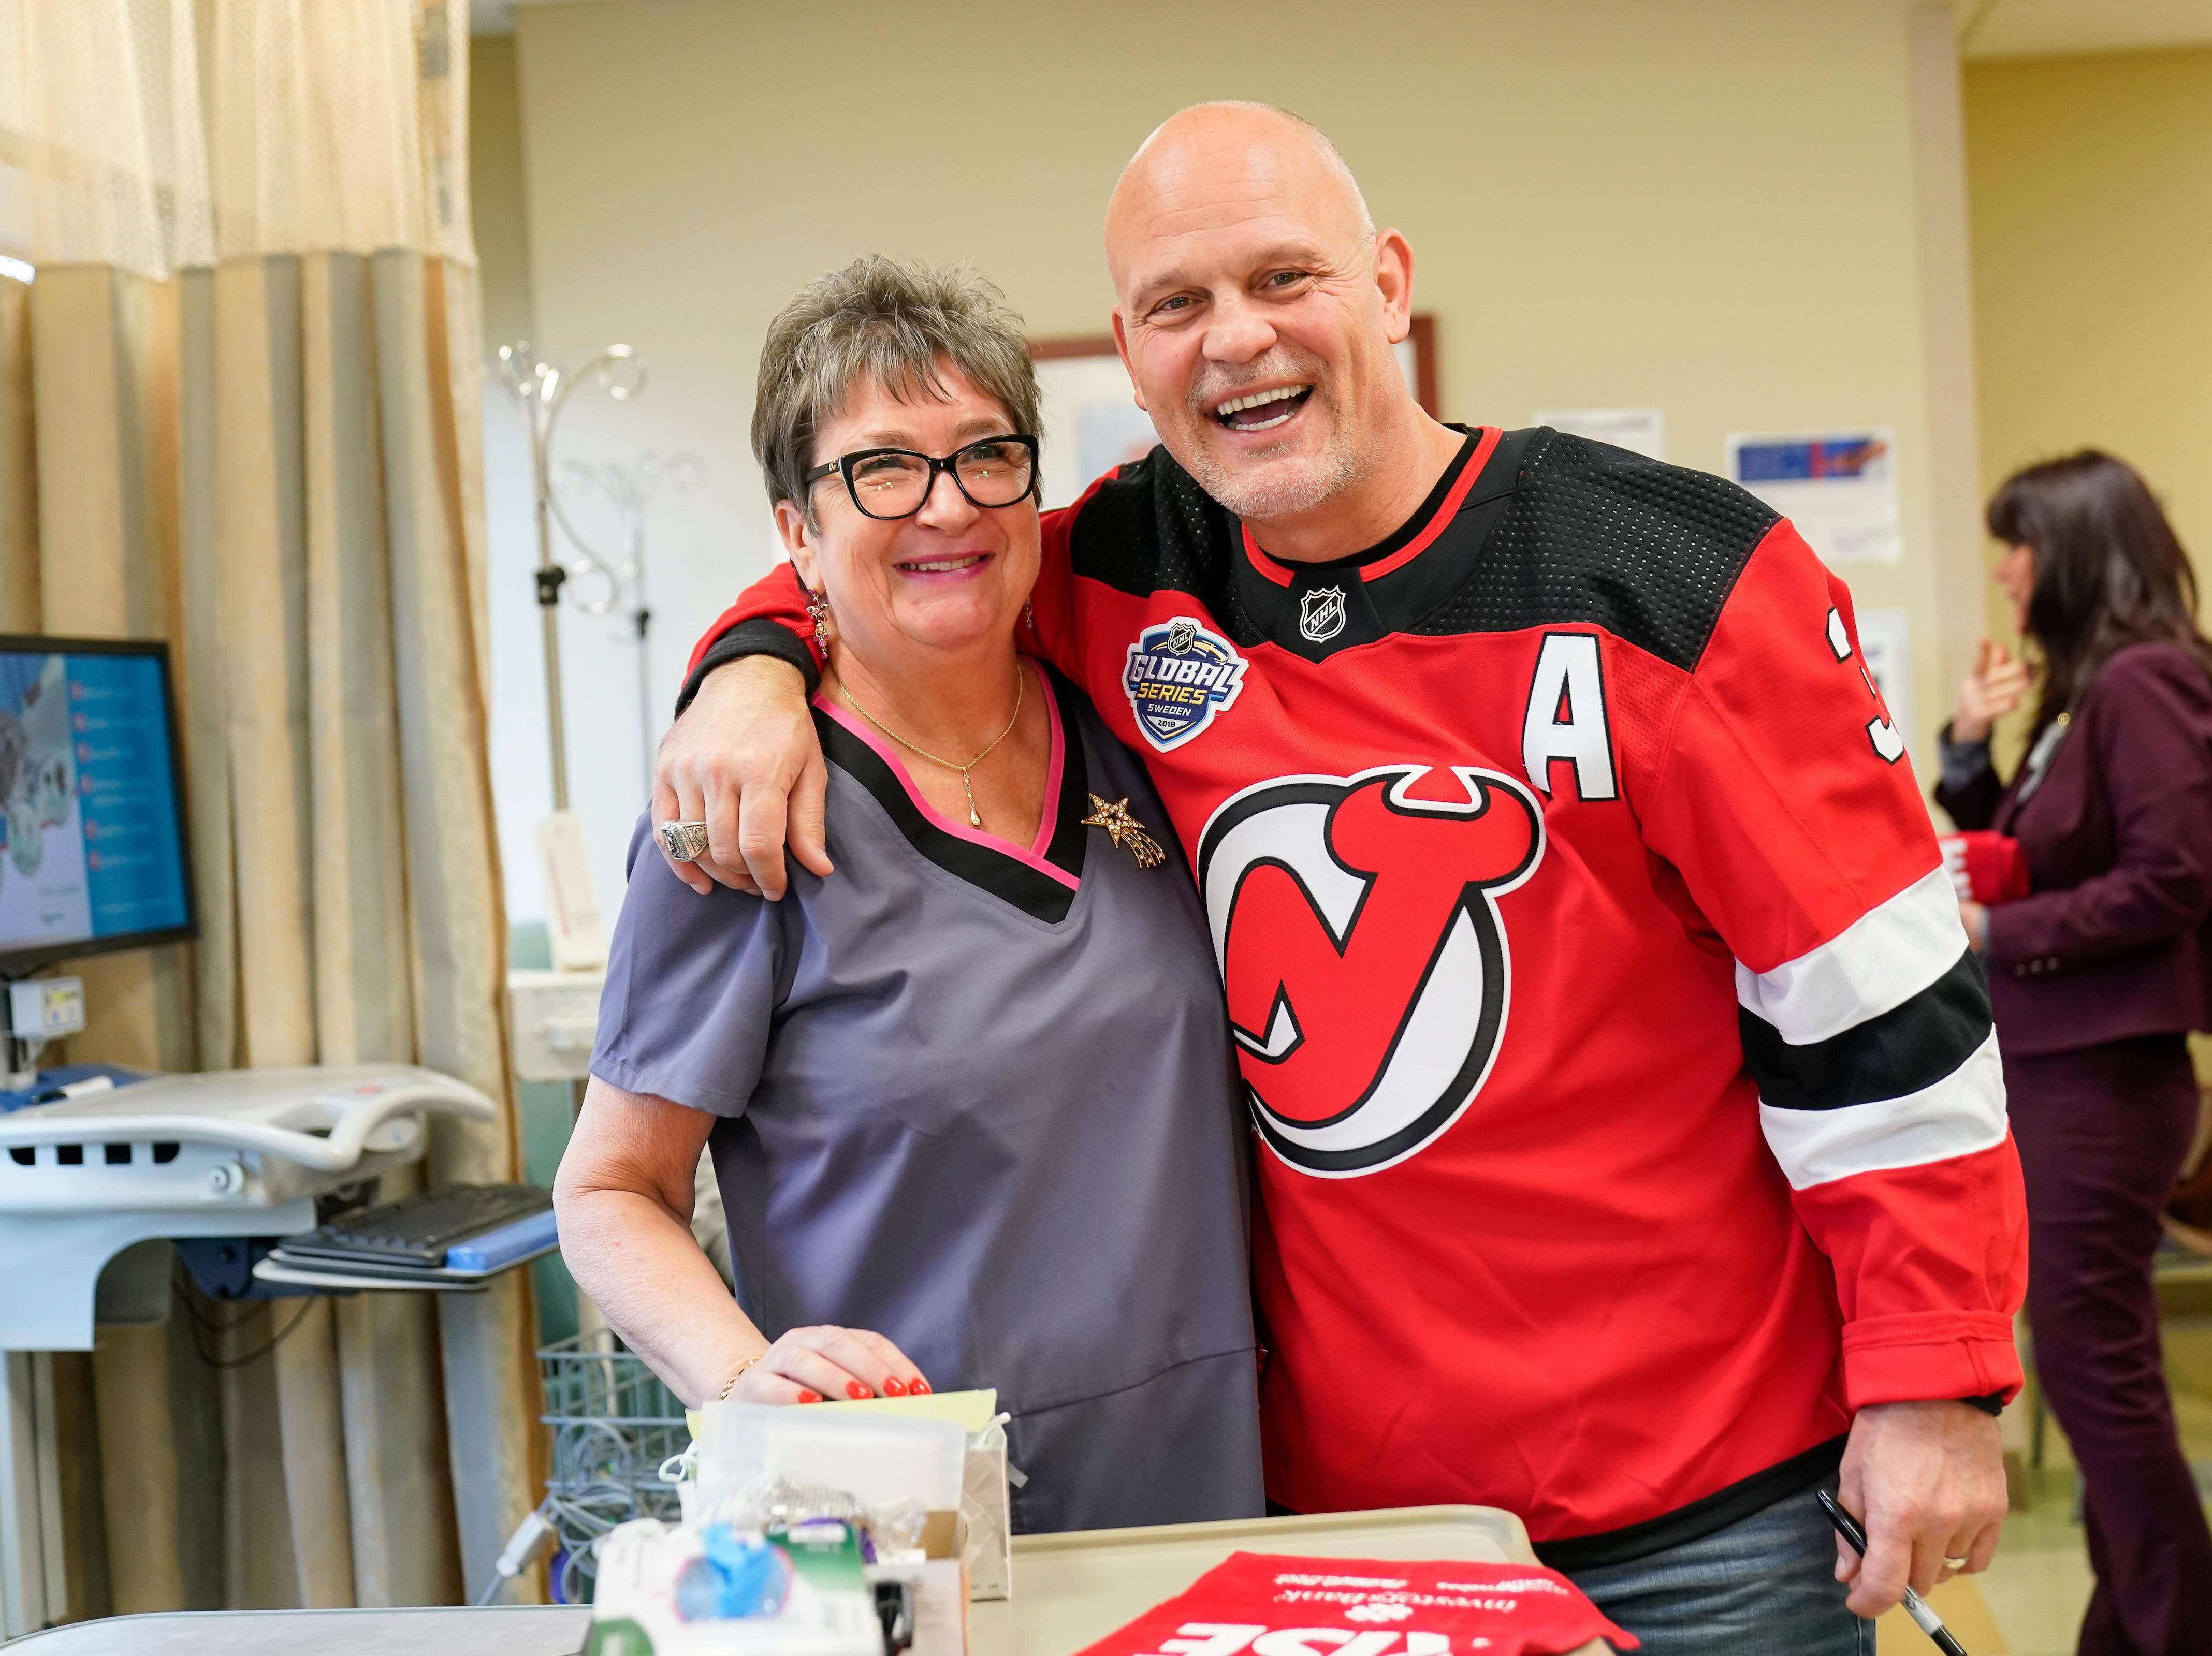 Three-time New Jersey Devils Stanley Cup winner Ken Danyeko was one of several Devils players, alumni and staff who visitedRWJ Barnabas Health sites Monday. At RWJUH Somerset, Daneyko charmed visitors, patients and staff alike visiting several oncology units at both the Steeplechase Cancer Center and Paul R.NardoniOncology Pavilionof the main hospital.